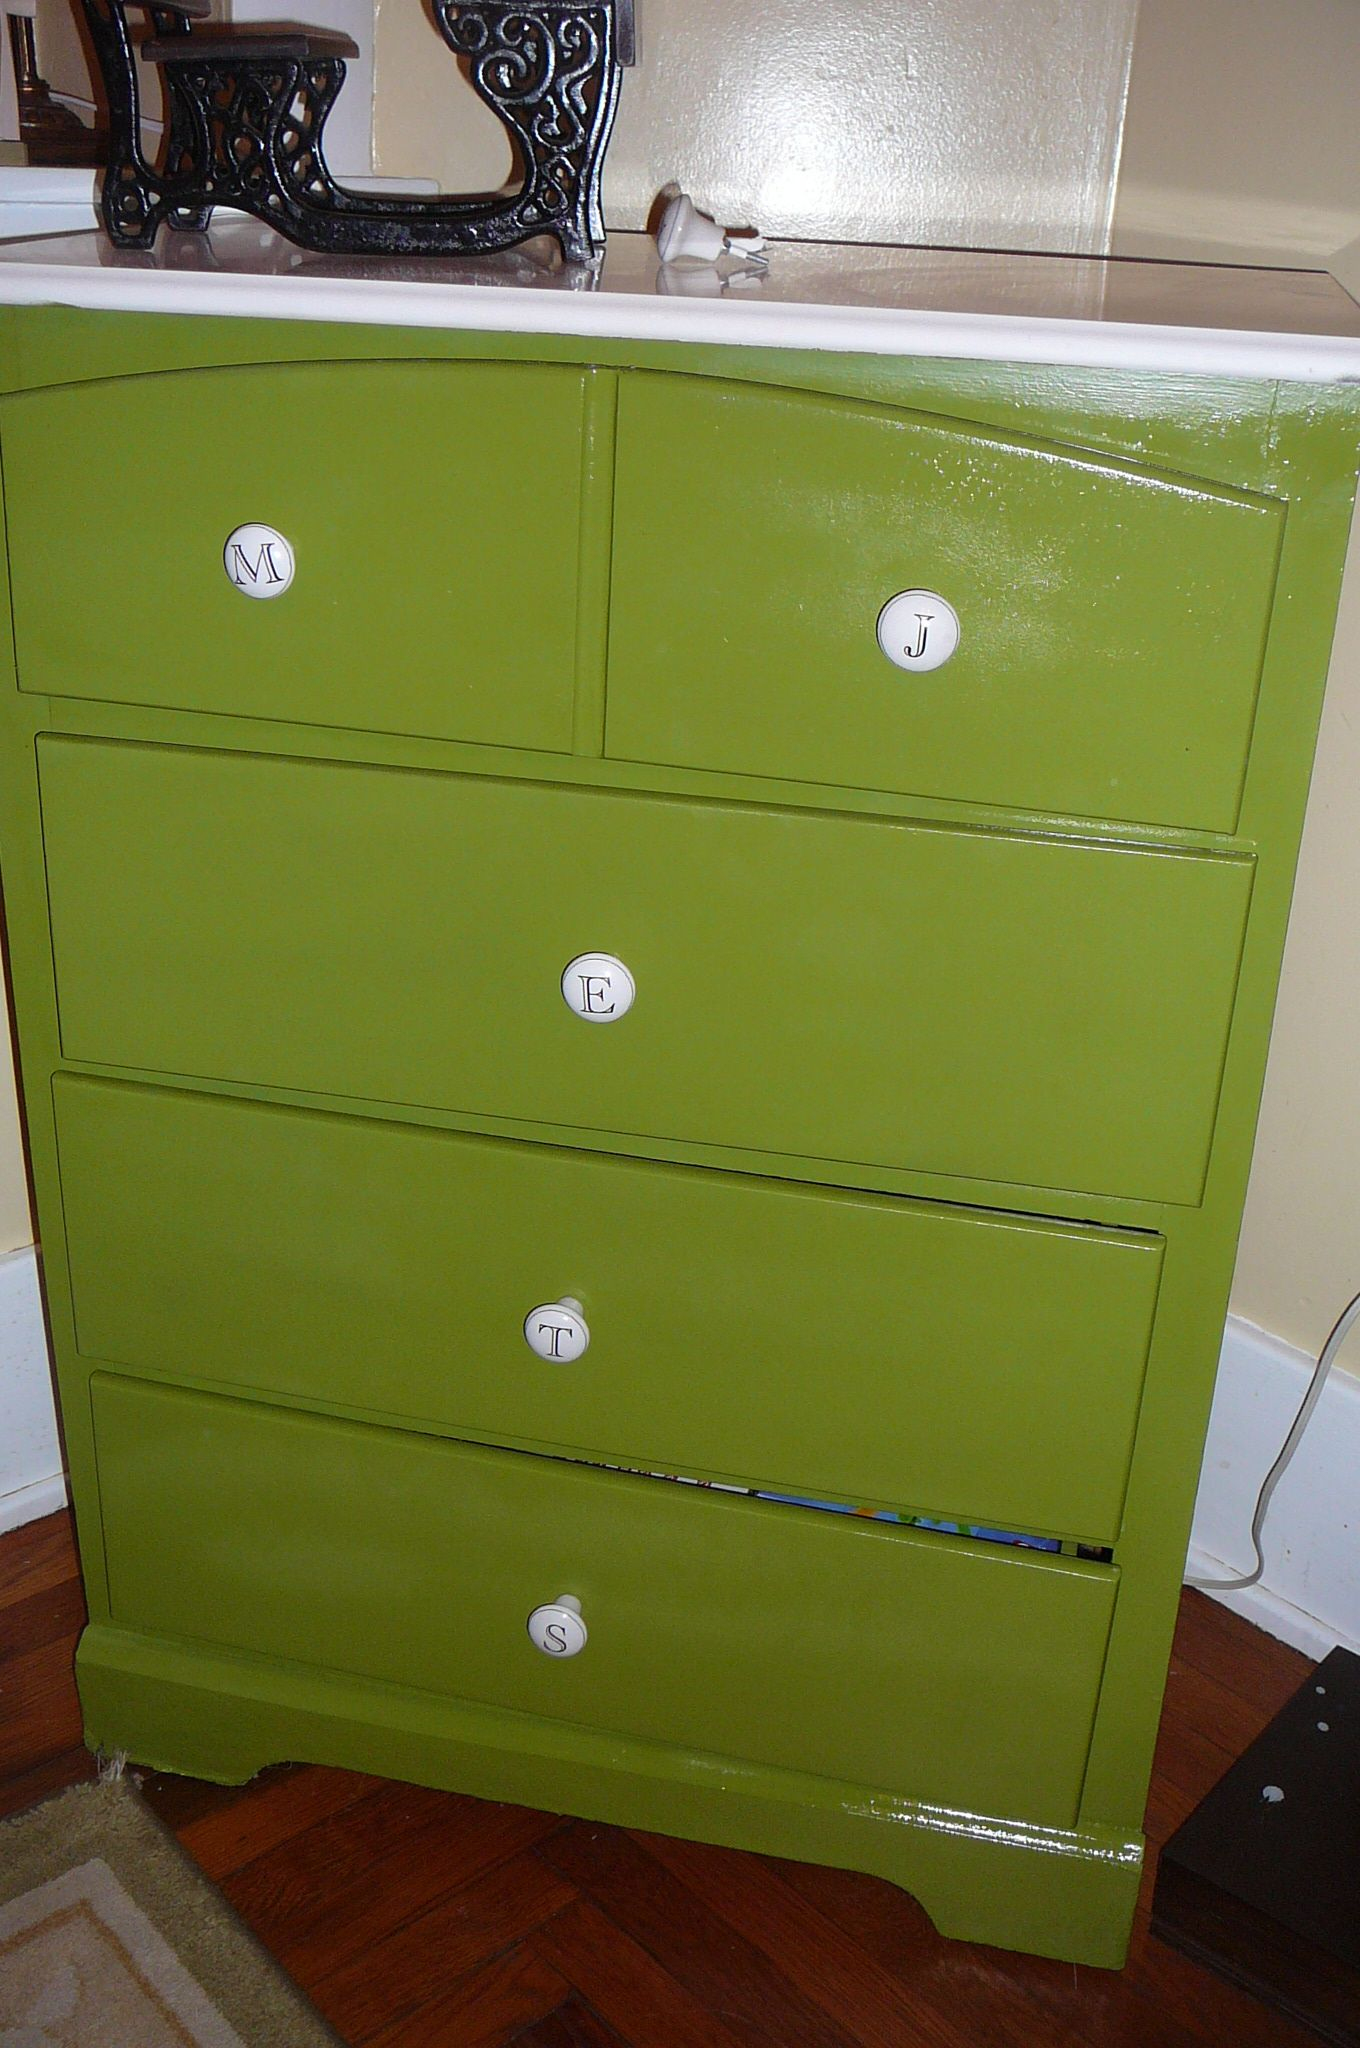 brown dressers blue drawers design sticker beige white and dresser cow nursery stained table baby pine cotton print size chrome of idea wooden drawer dog style carpet with mattress sheets rug full door knobs changing as fur flooring cute chest laminate clothes